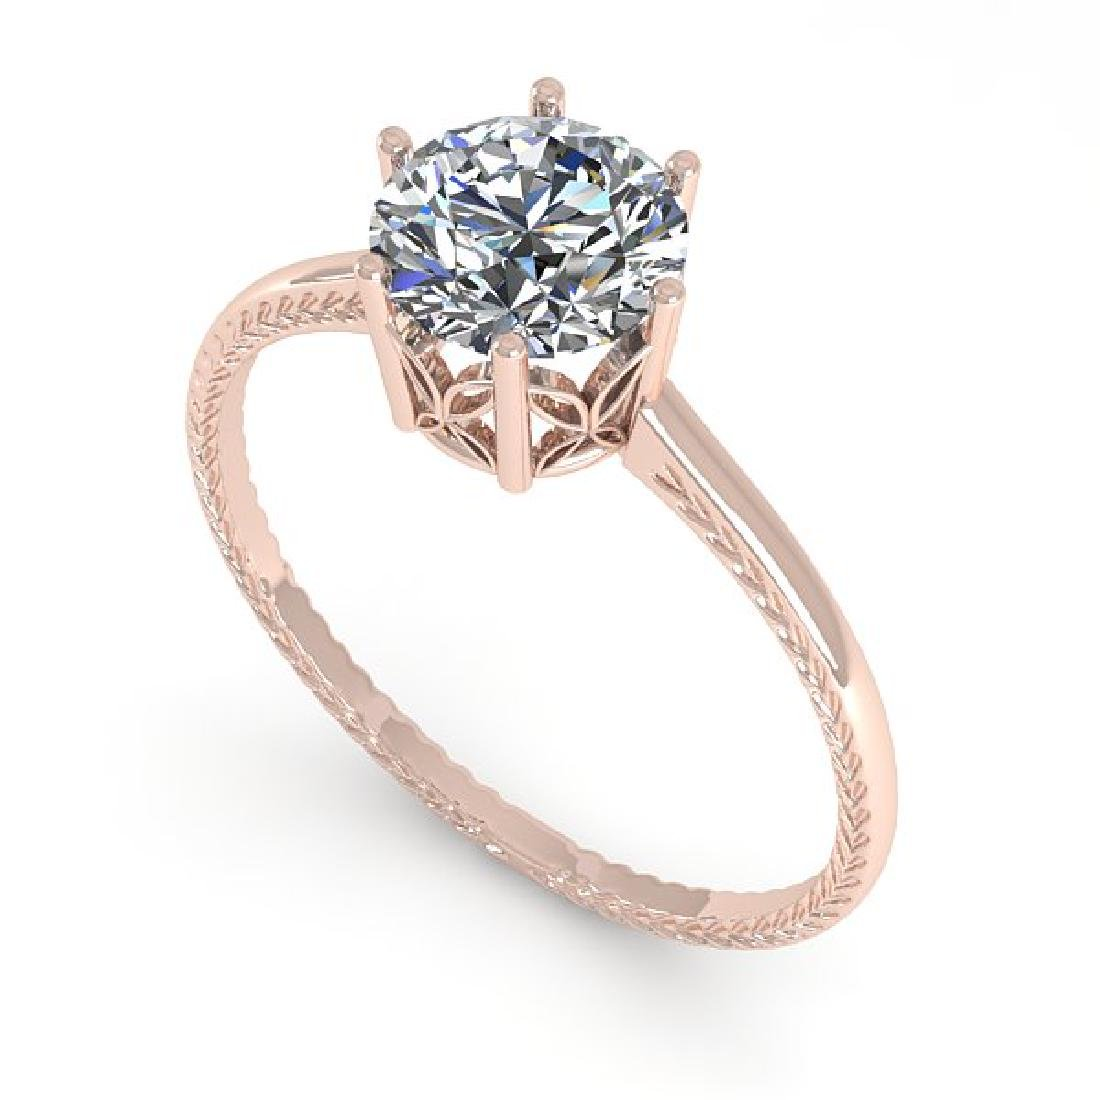 1.01 CTW VS/SI Diamond Art Deco Ring 14K Rose Gold - 2